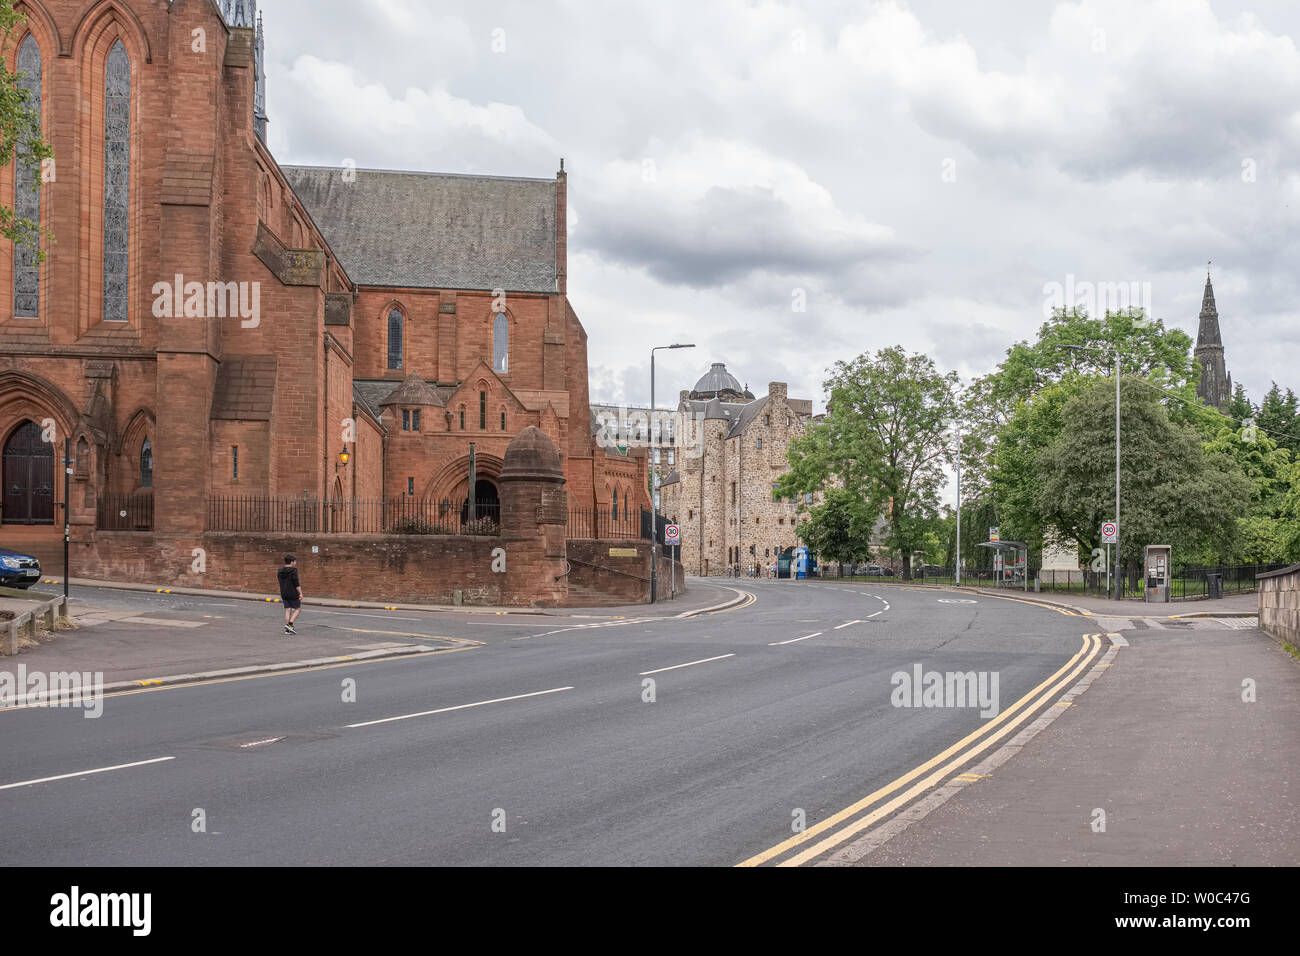 Looking over to the Barony Parish Church in Castle Street at intersection with Rottenrow and Macleod Street Now University of Strathclyde ceremonial h Stock Photo